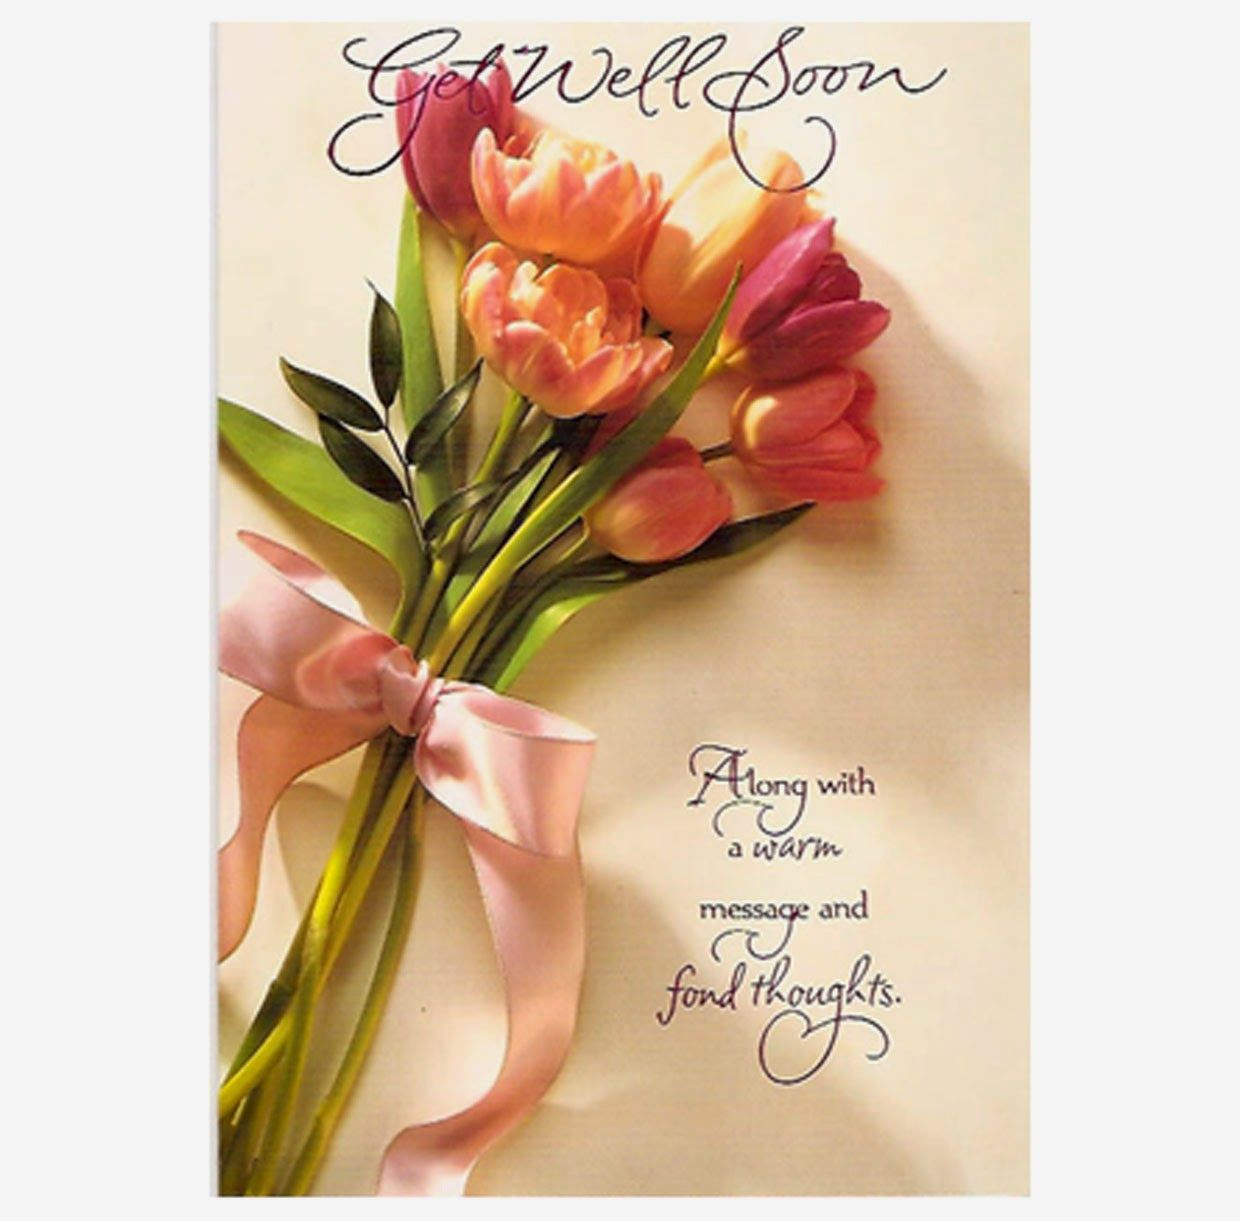 Im glad your surgery went well today free greetings from www bouquet of roses get well soon greeting card kristyandbryce Gallery